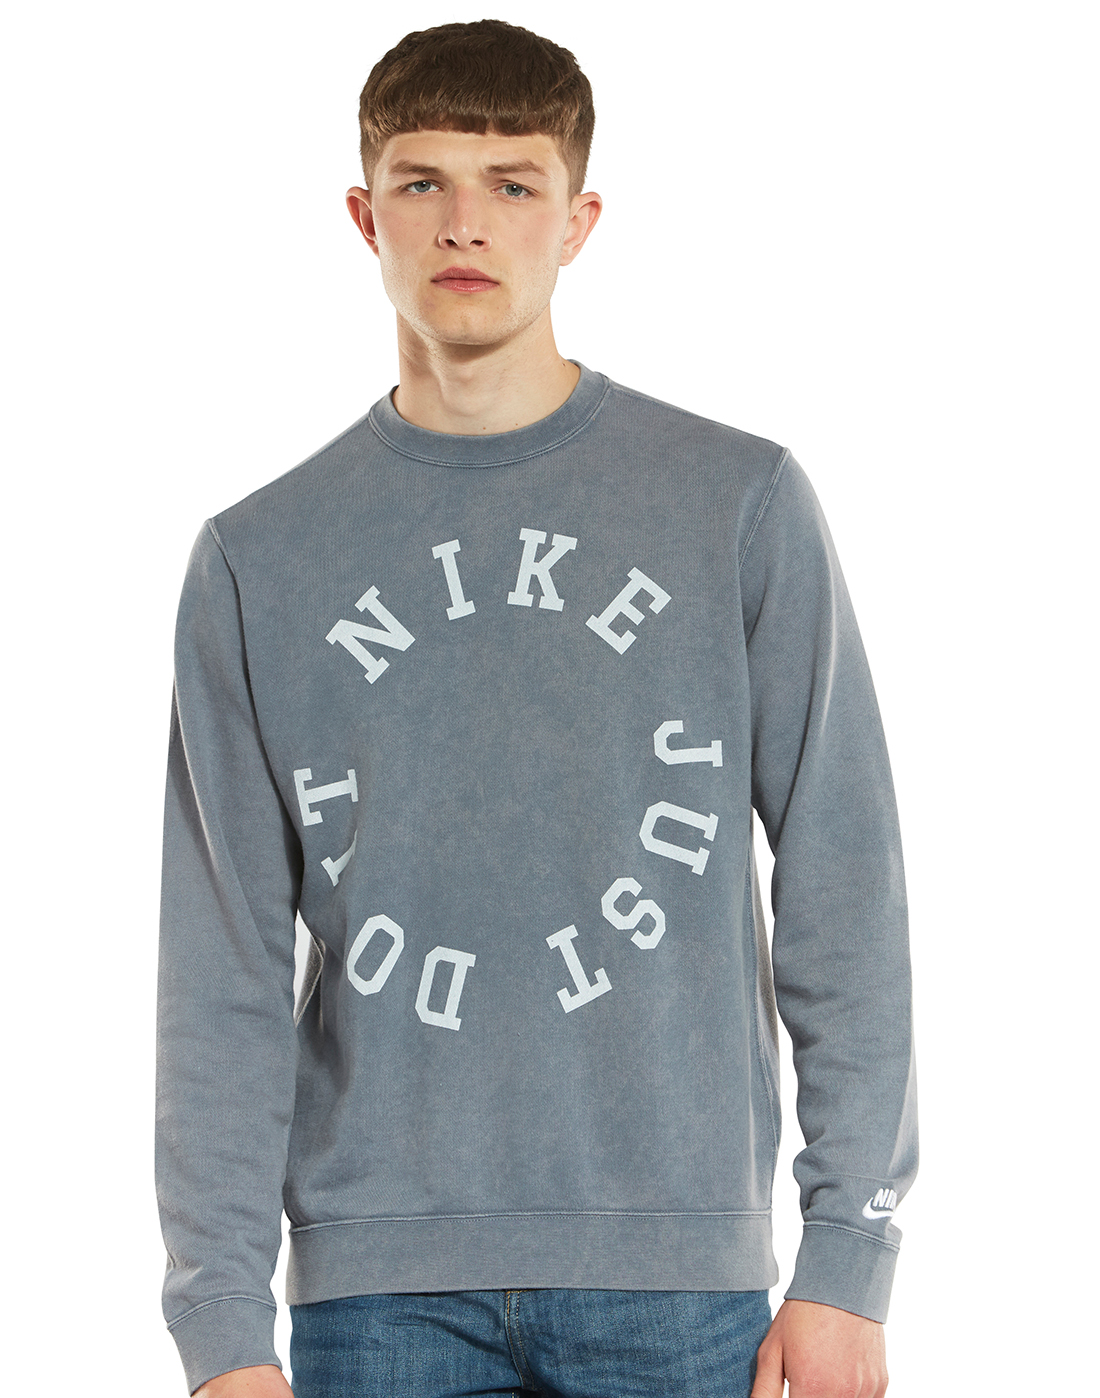 37f1d417a Men's Grey Nike Just Do It Washed Sweatshirt | Life Style Sports